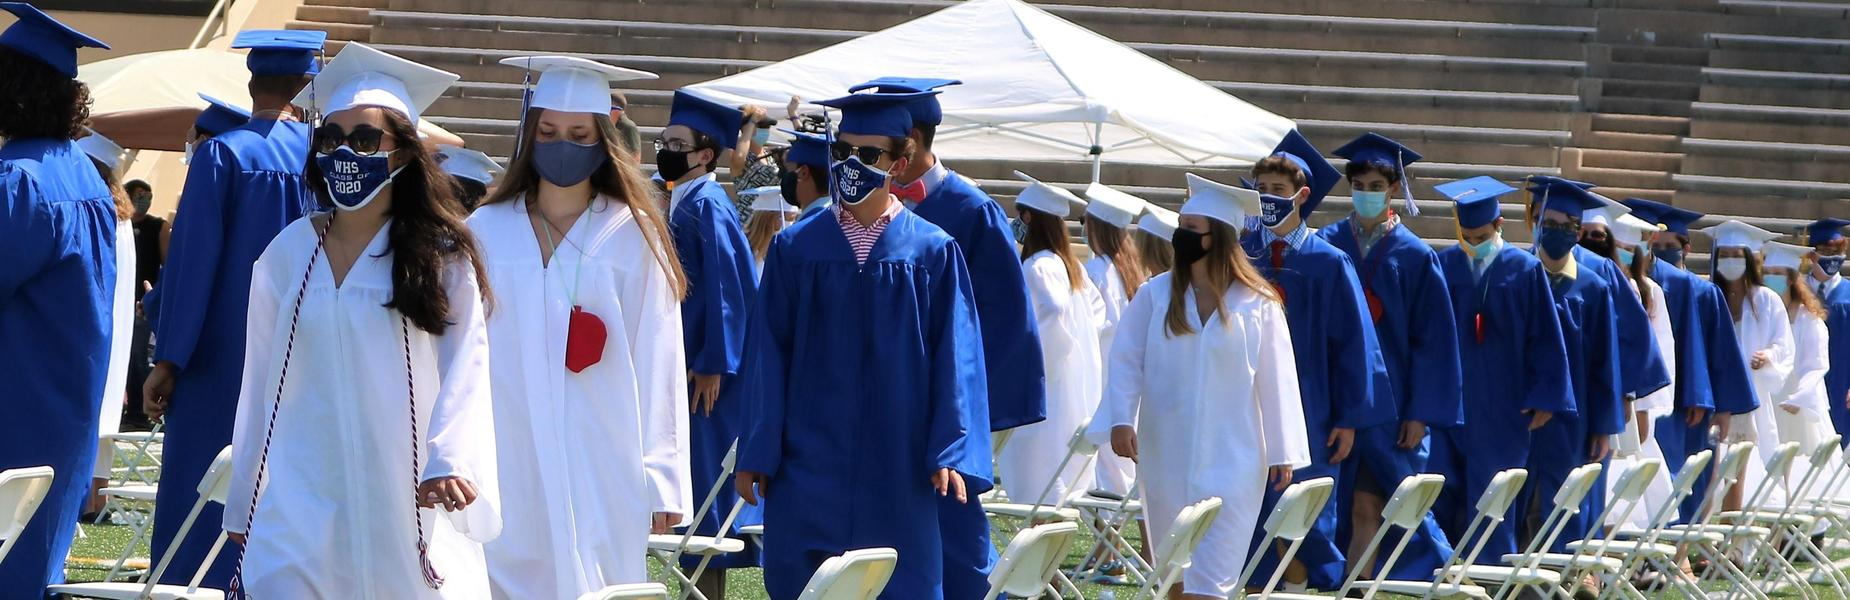 Photo of WHS graduates progressing in for ceremony.